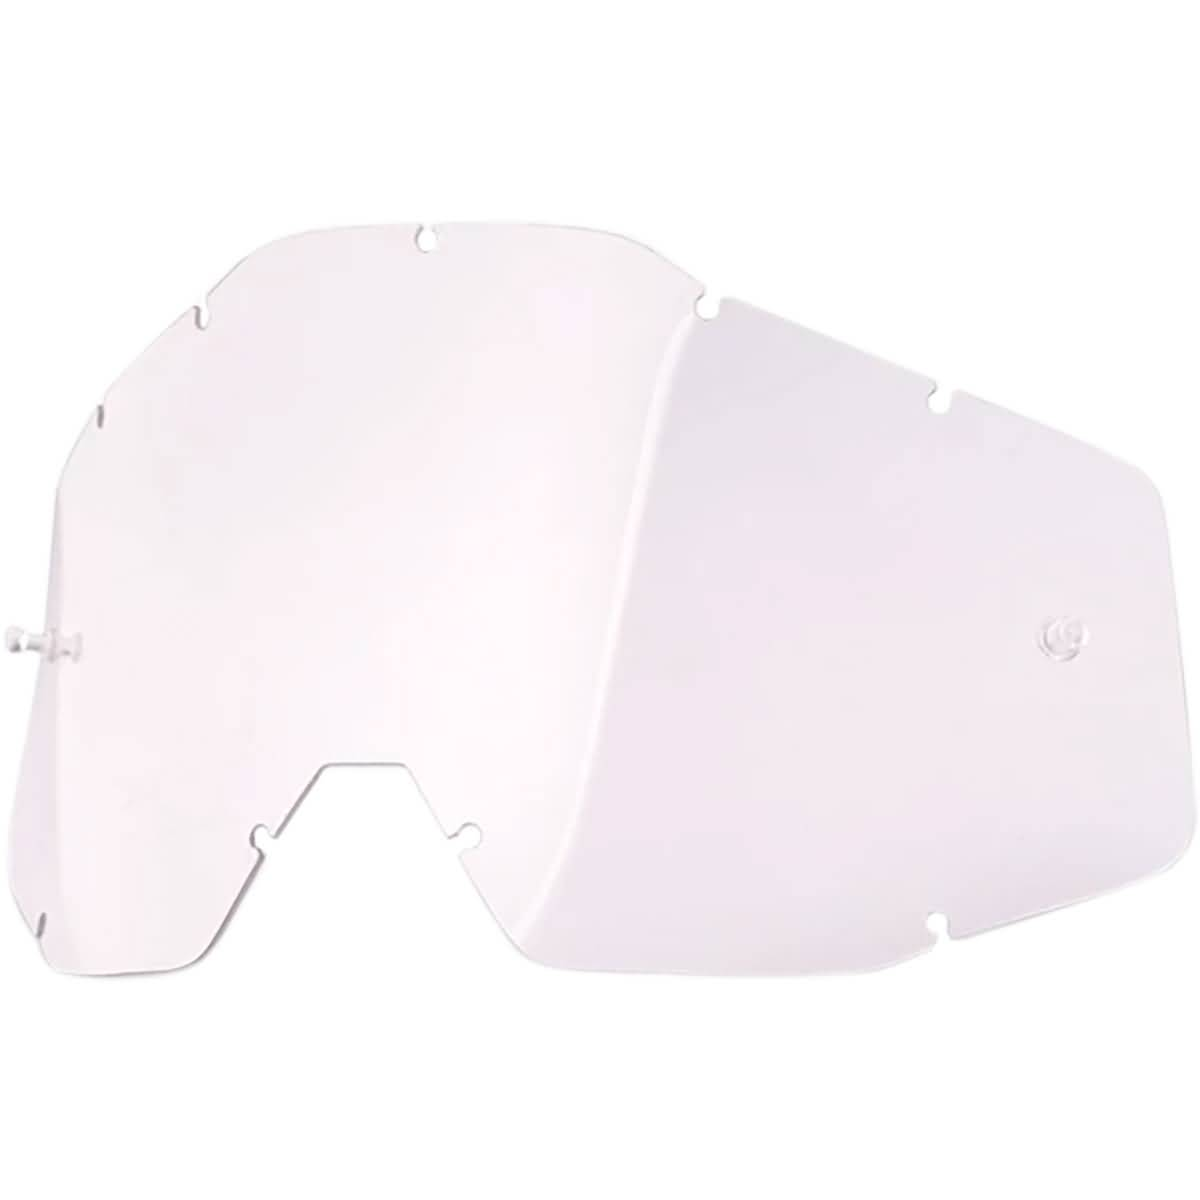 100% Accuri/Strata Replacement Lens Youth Goggles Accessories-951122